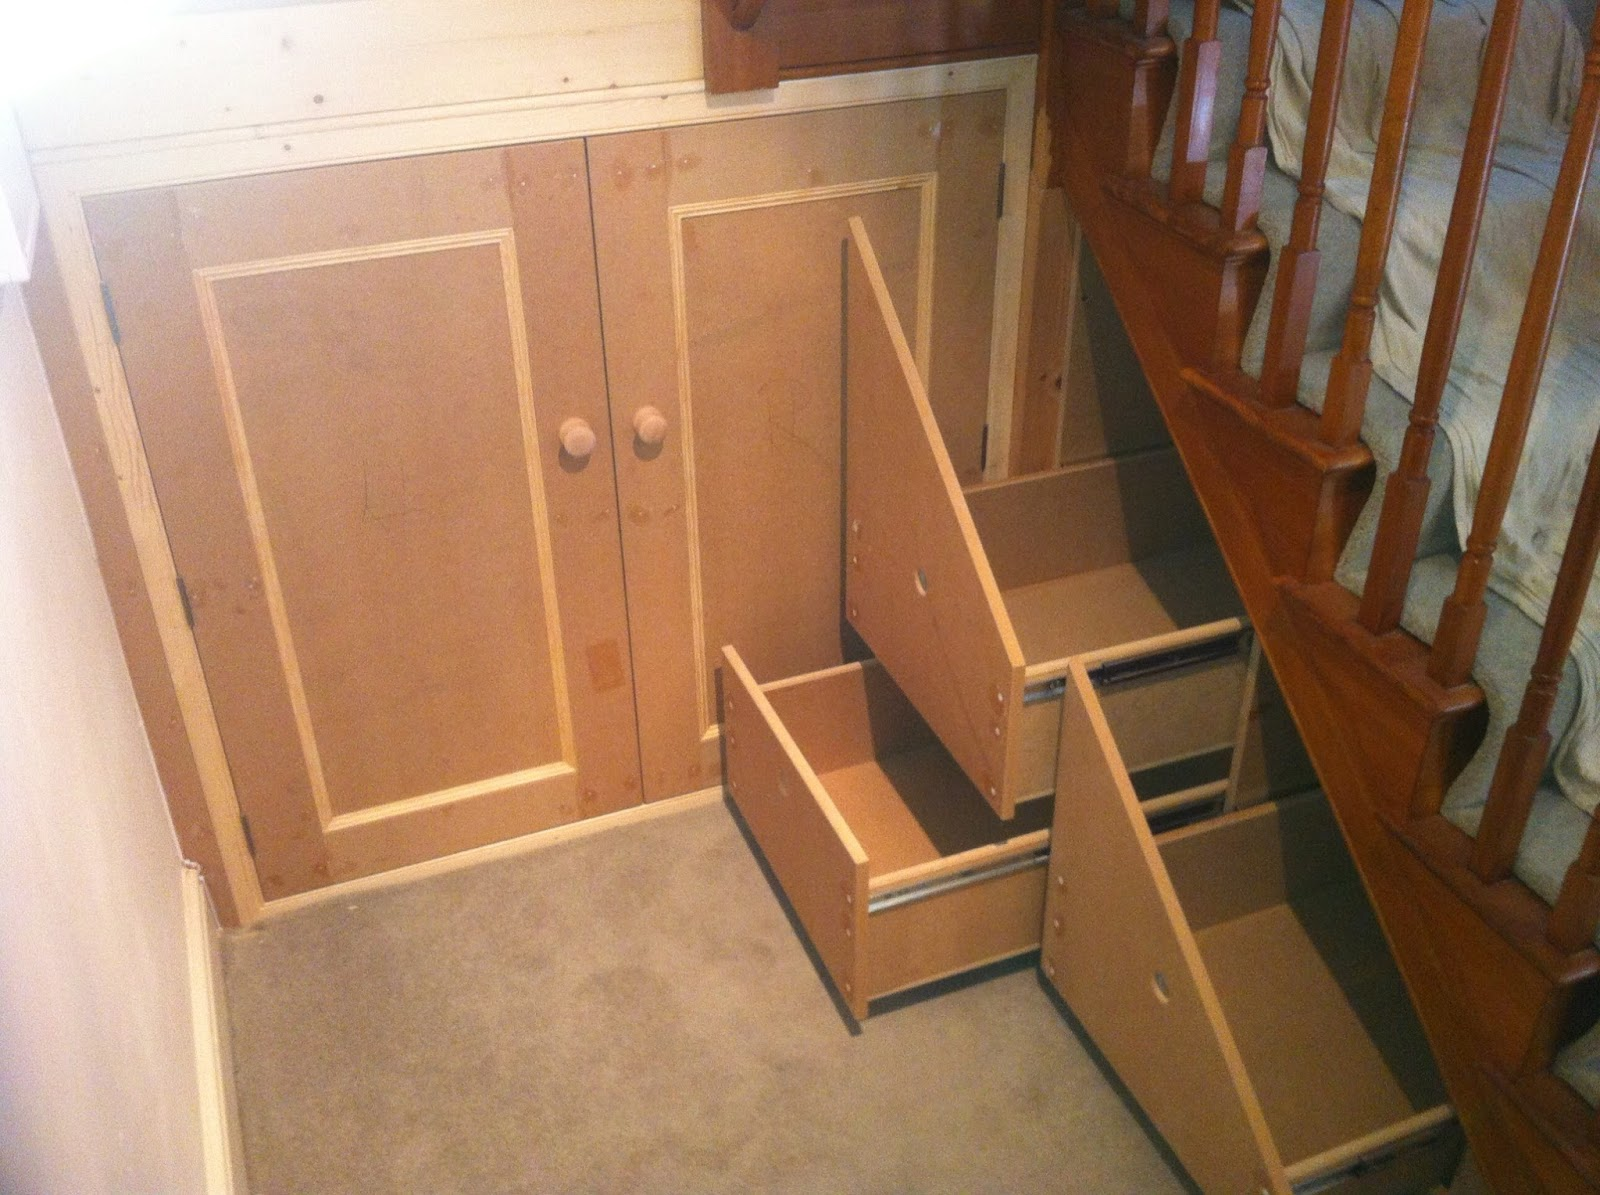 Bespoke Under Stairs Shelving: H. Wells Property Maintenance And Bespoke Carpentry: Under